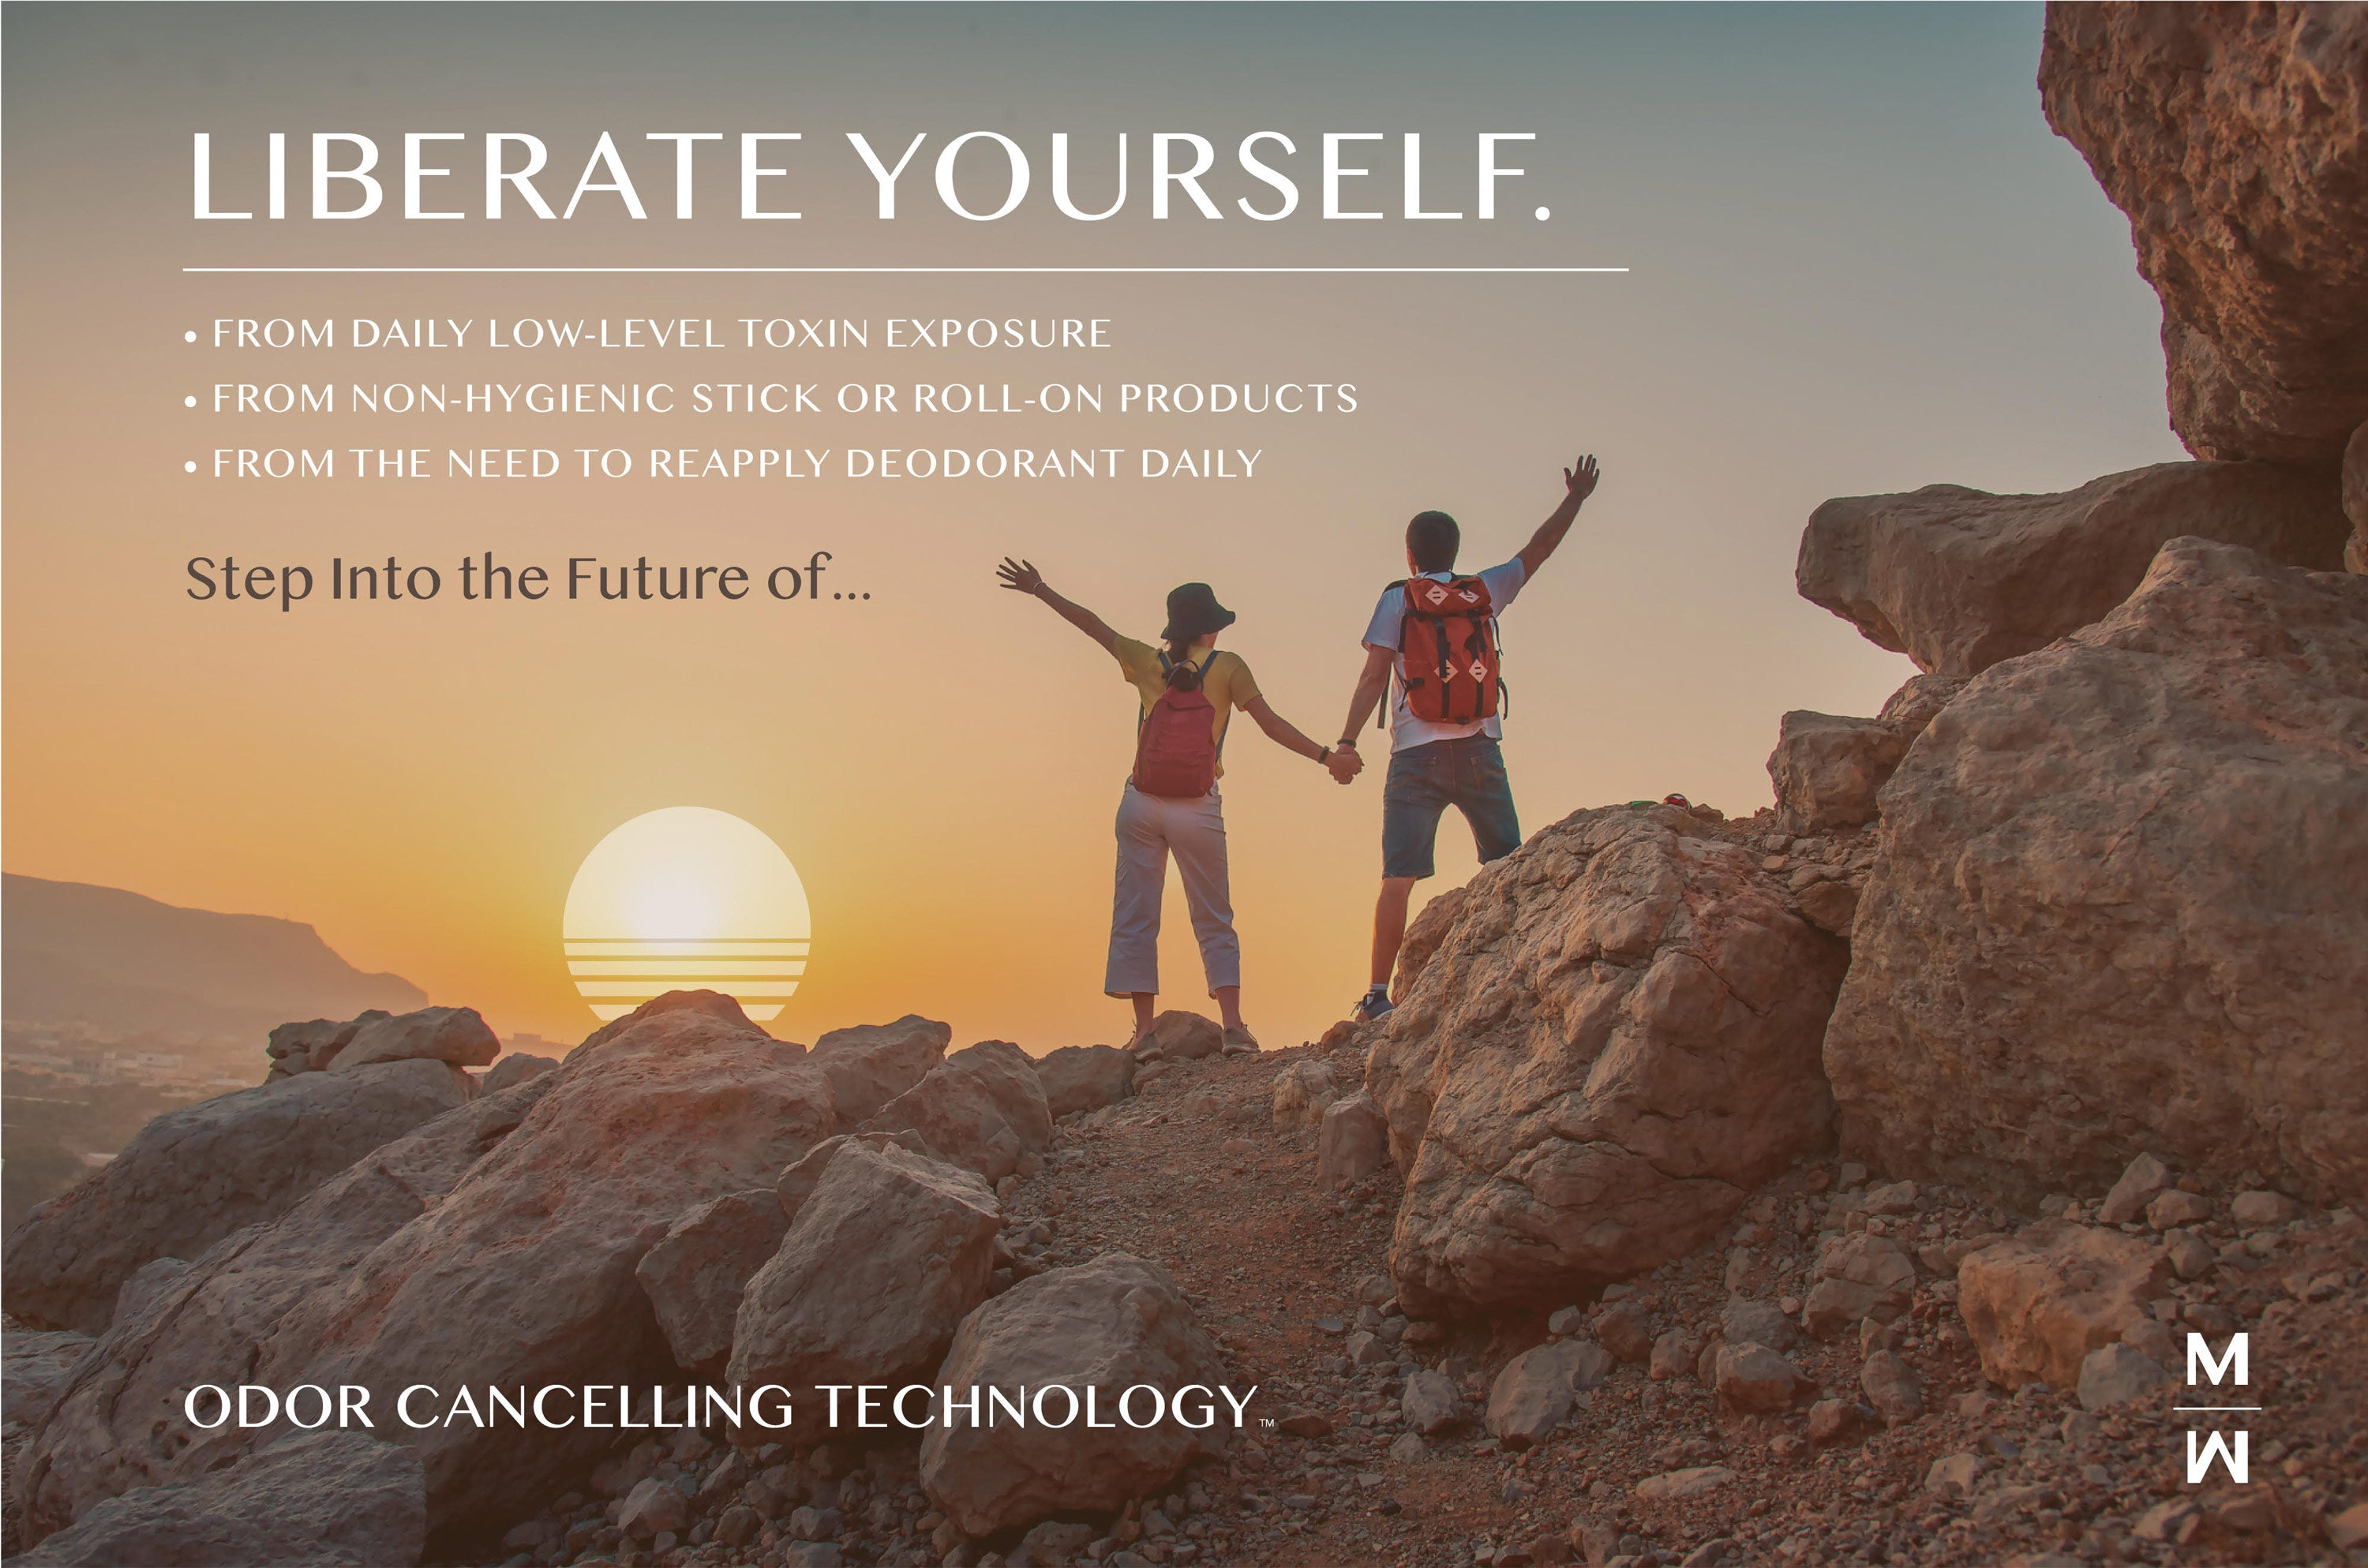 =Liberate Yourself. From daily low-level toxin exposure. From non-hygienic stick or roll-on products. From the need to reapply deodorant daily. Step into the future of... odor cancelling technology.